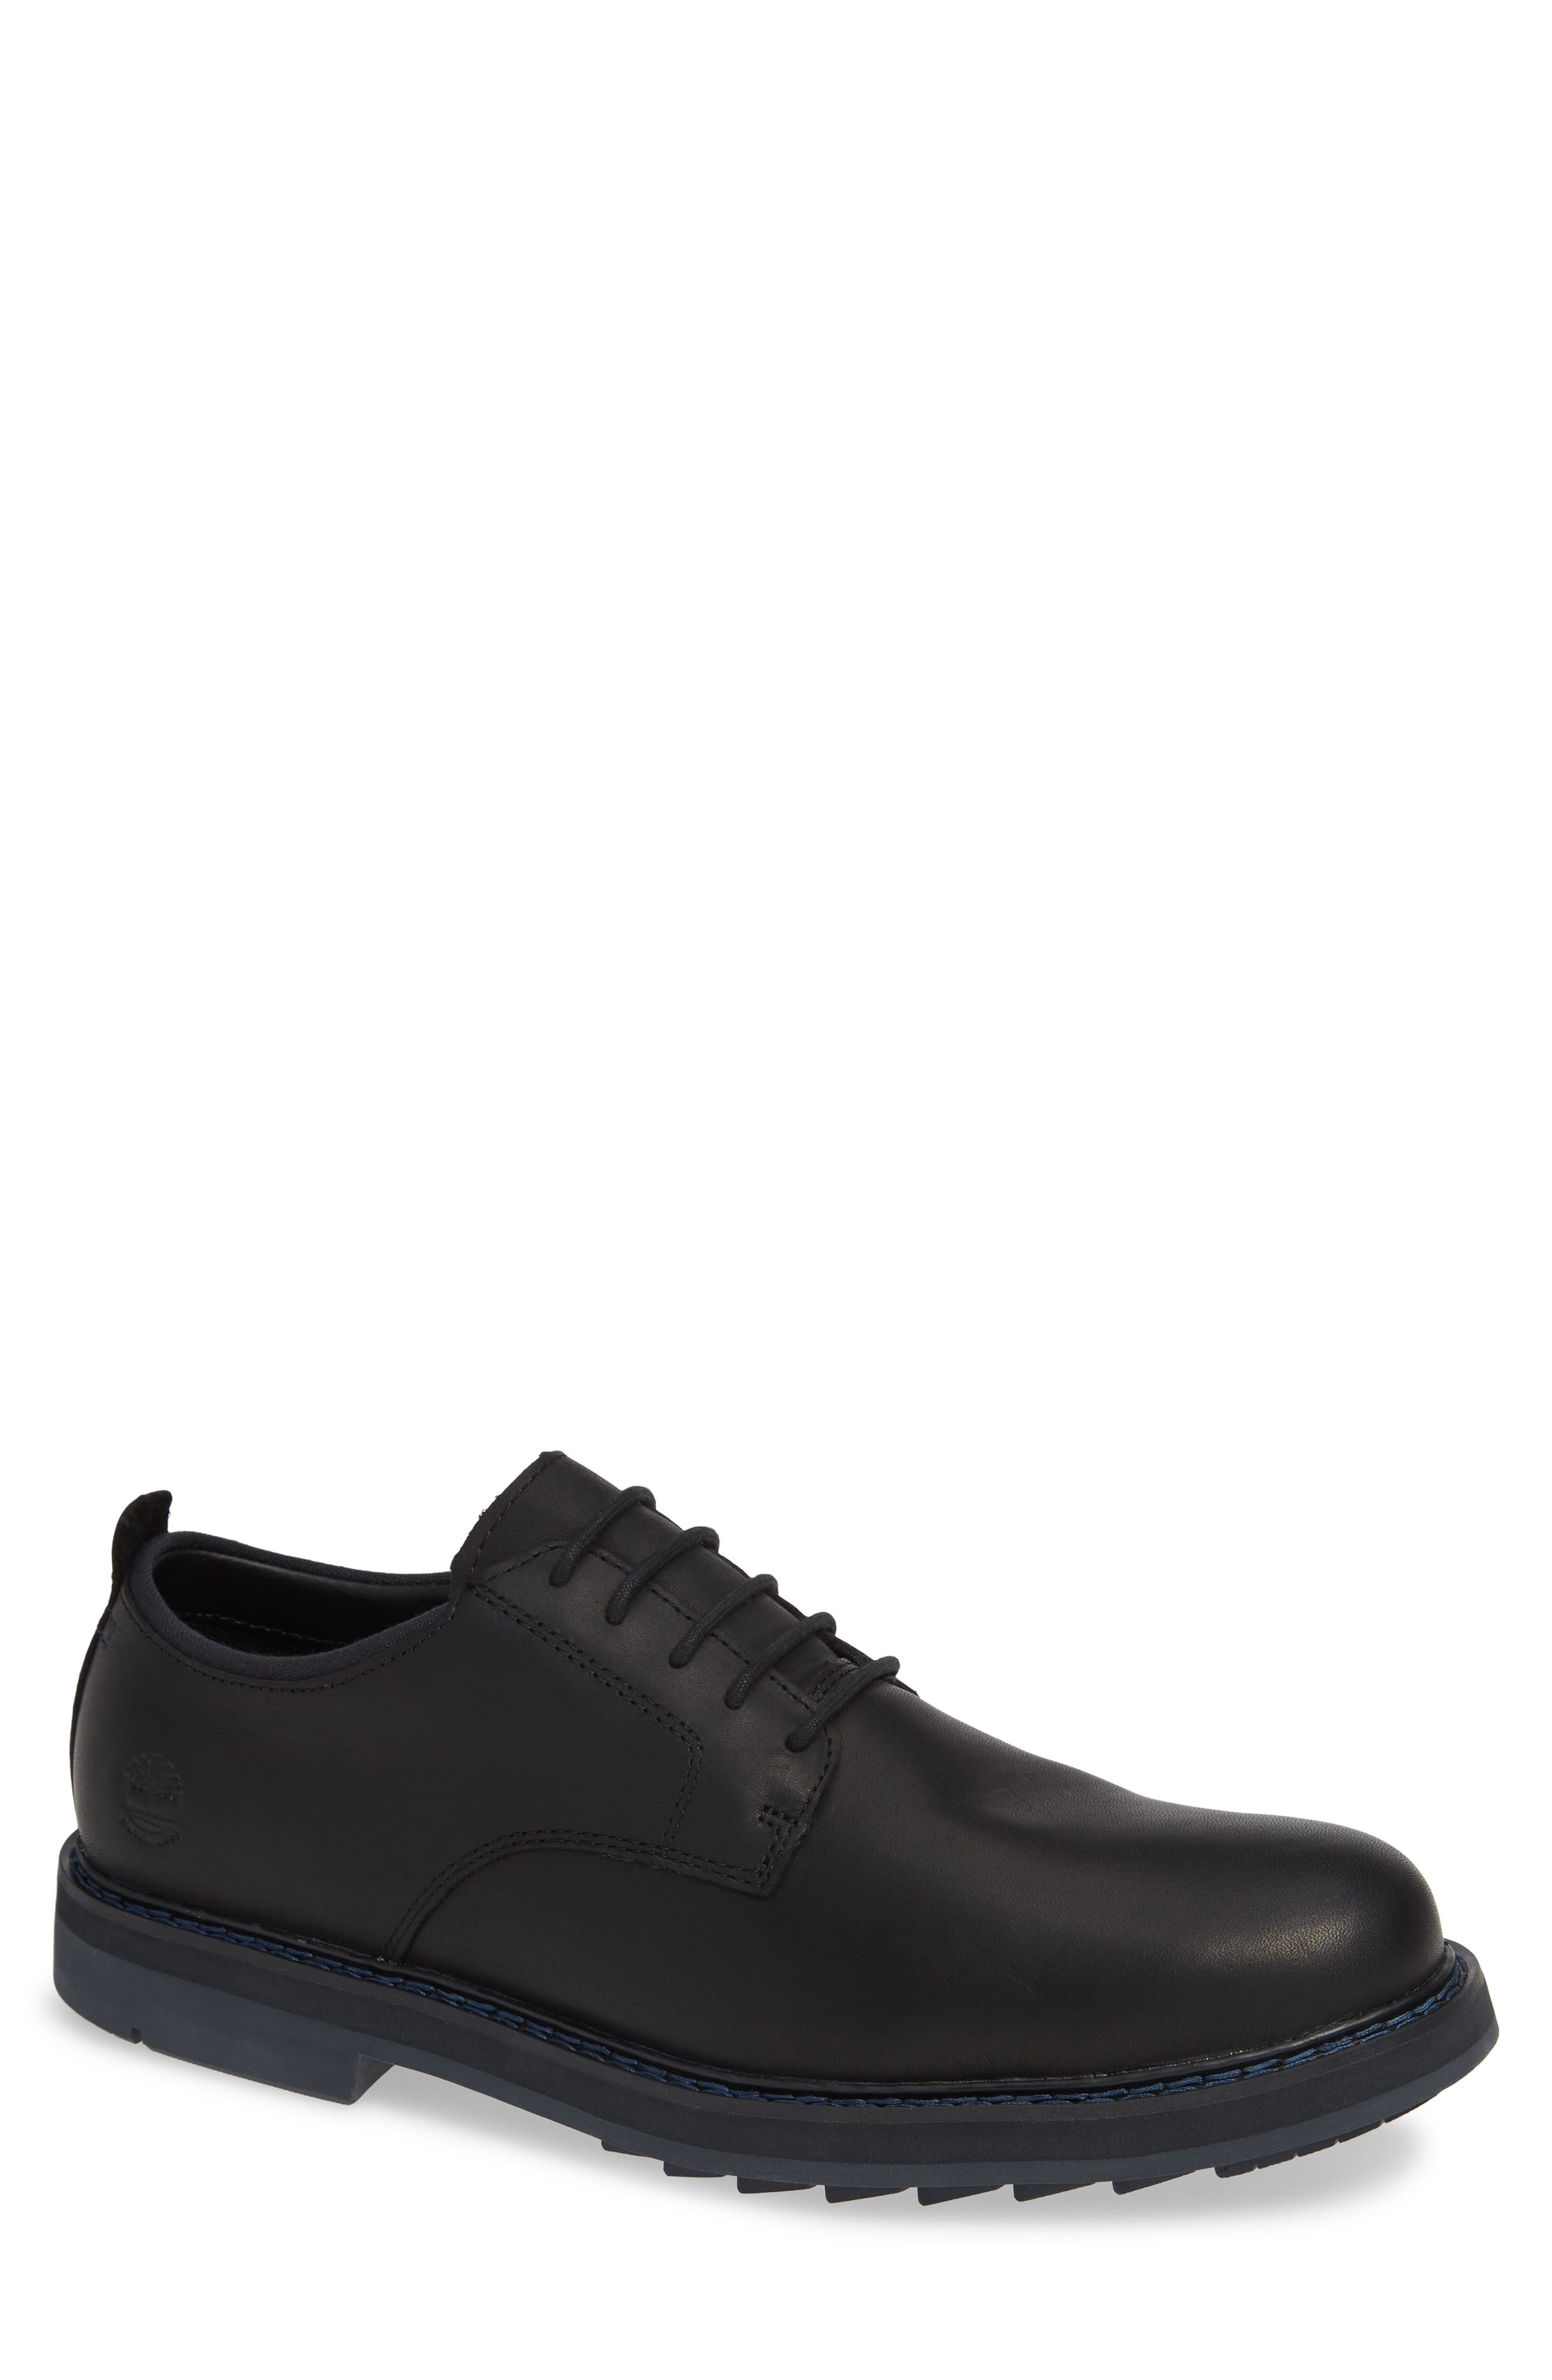 Squall Canyon Waterproof Plain Toe Derby,                             Main thumbnail 1, color,                             BLACK LEATHER